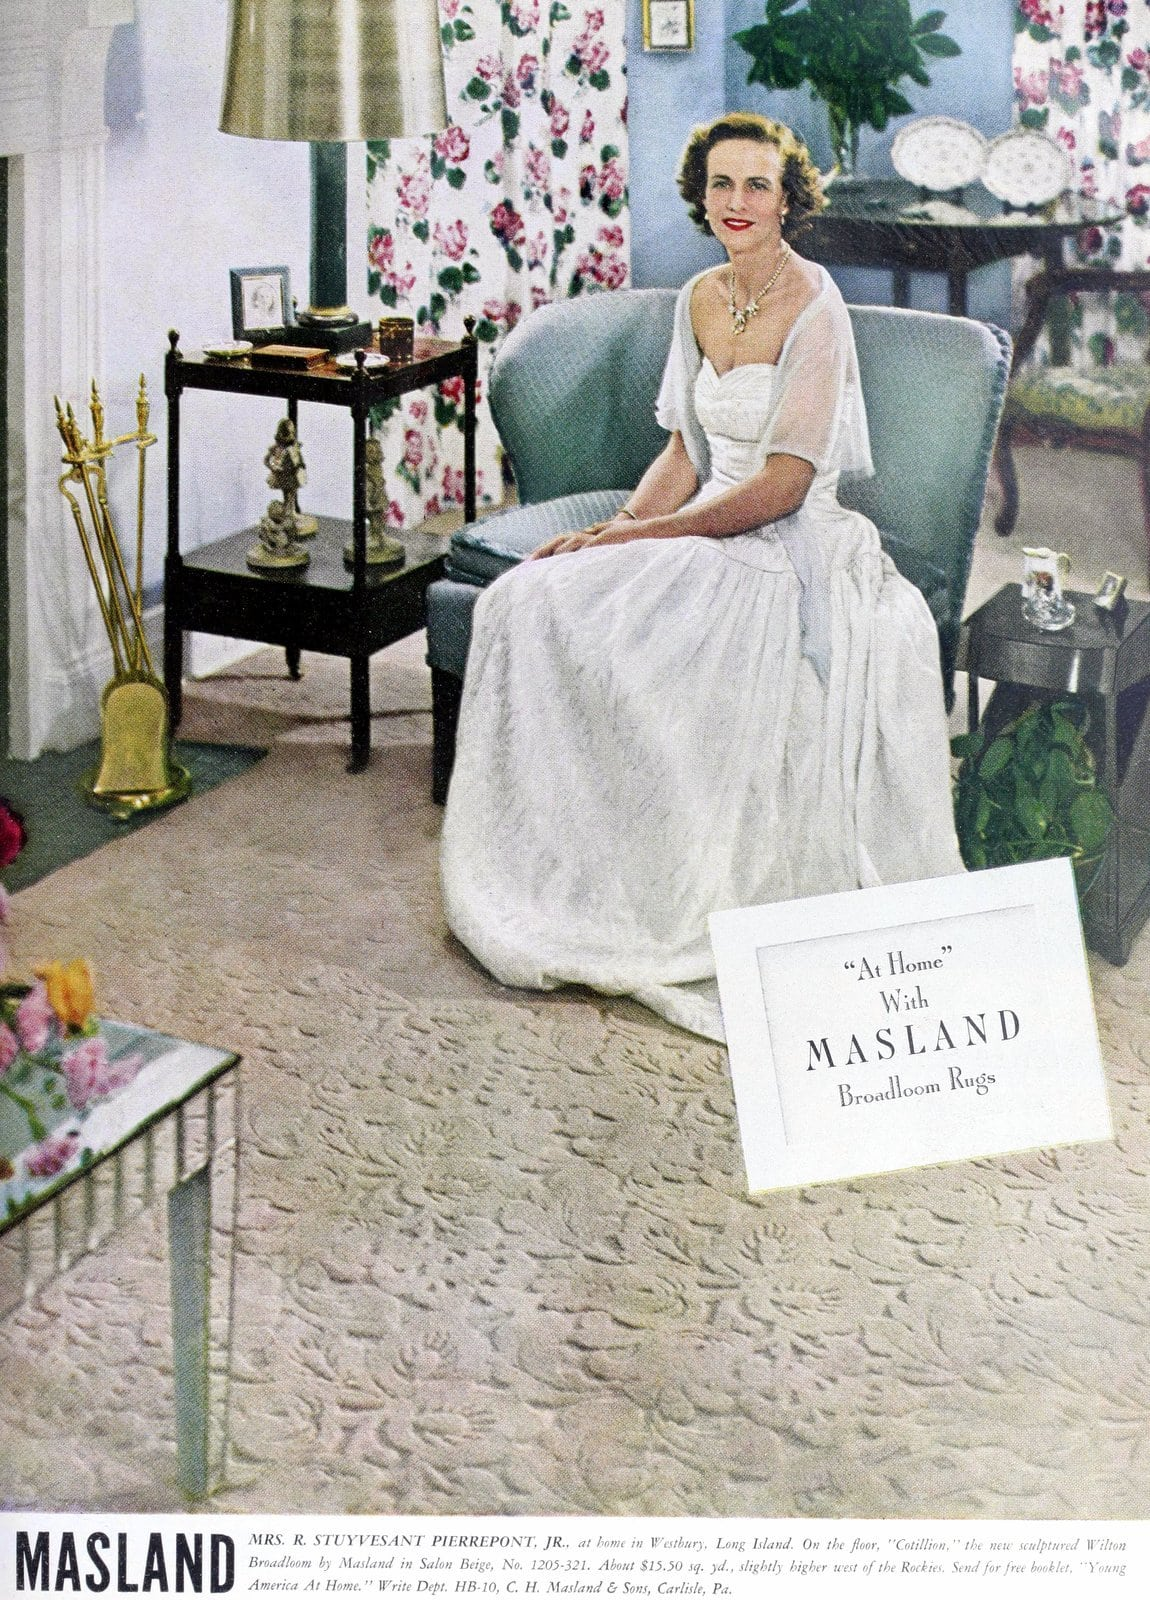 Mrs R Stuyvesant Pierrepont Jr - Rich wife from the 1940s with Masland Broadloom Rug